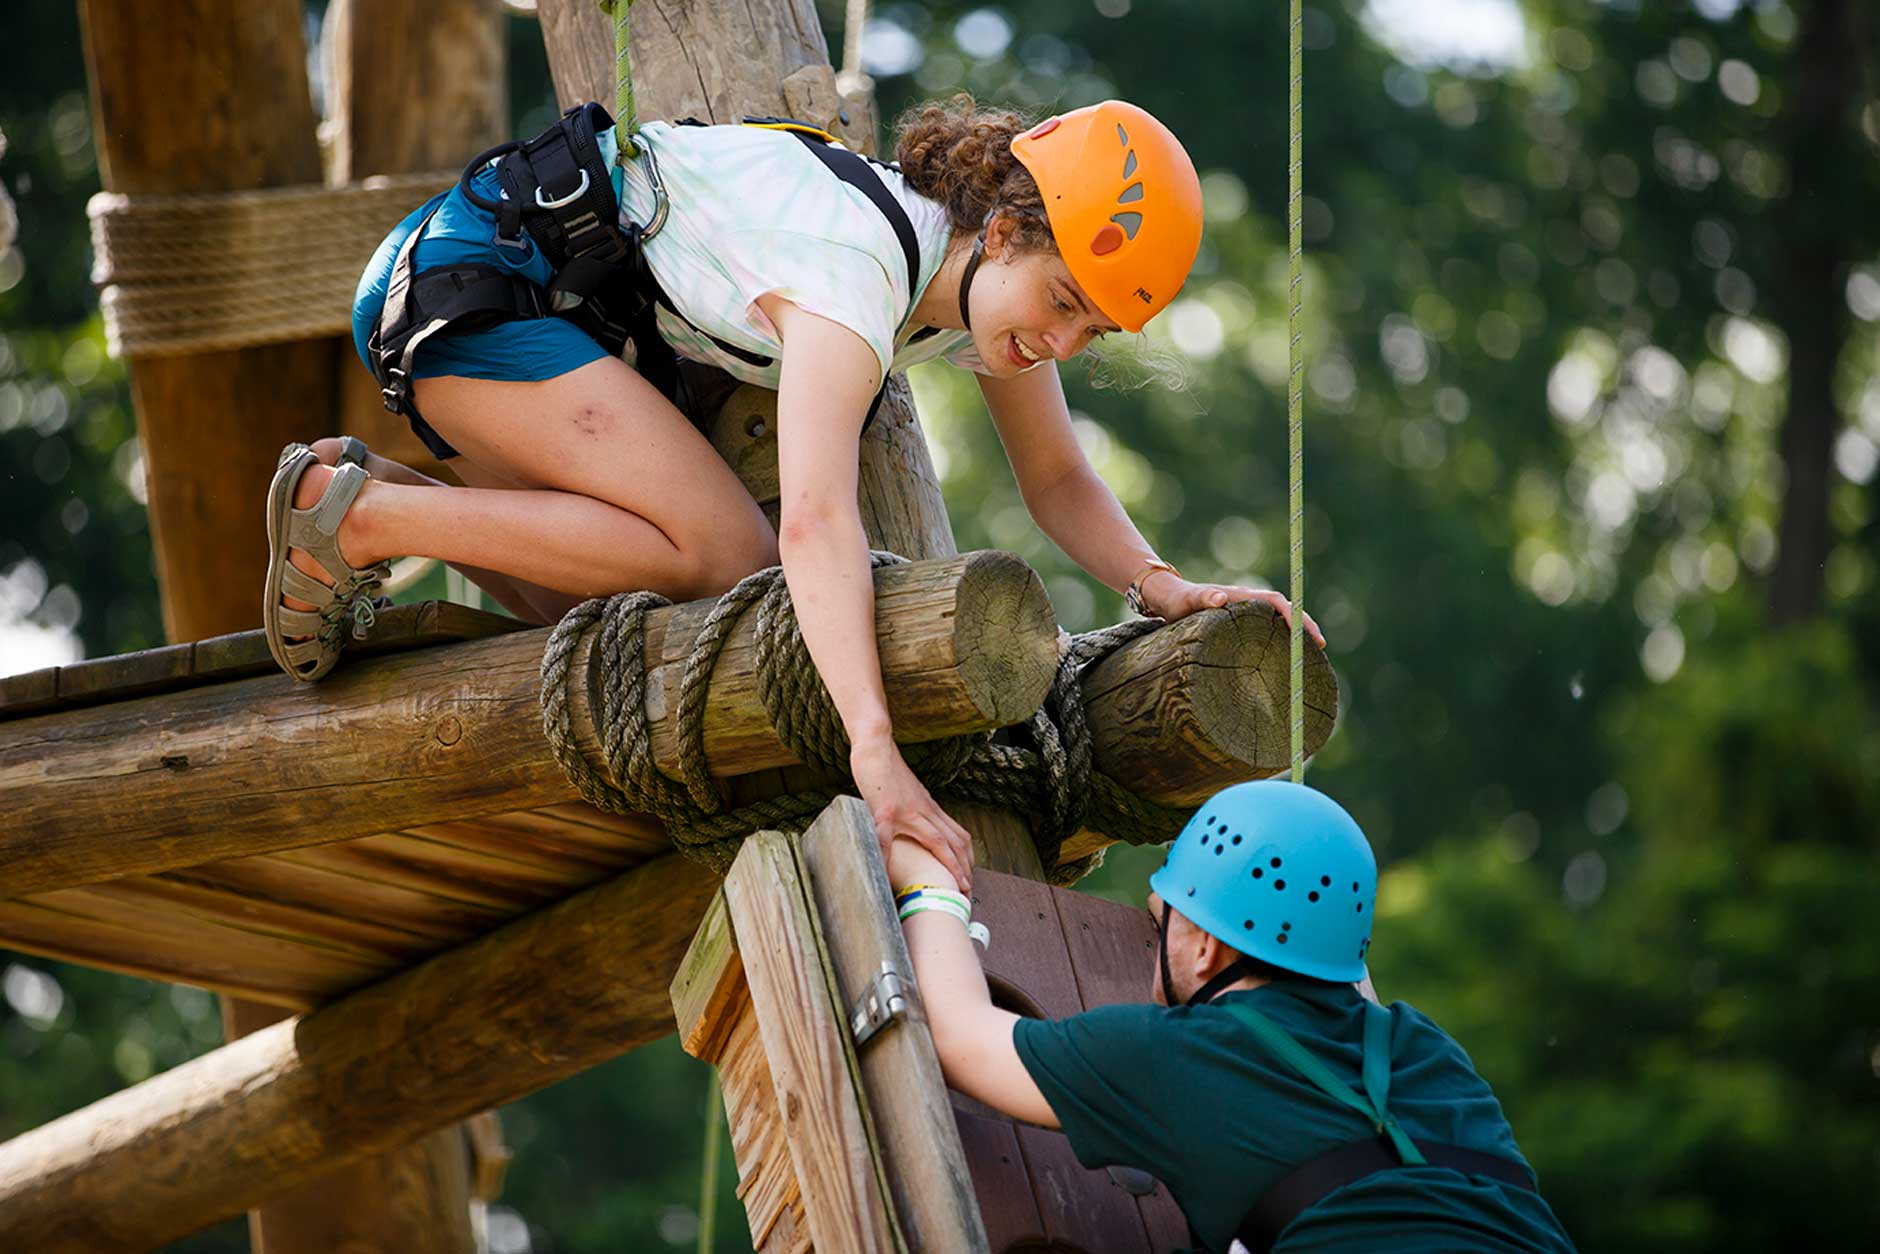 Indiana University student Maria Erlandson, a junior studying recreational therapy, encourages a camper on a challenge course at Bradford Woods on Thursday, May 31, 2018. (James Brosher/IU Communications)